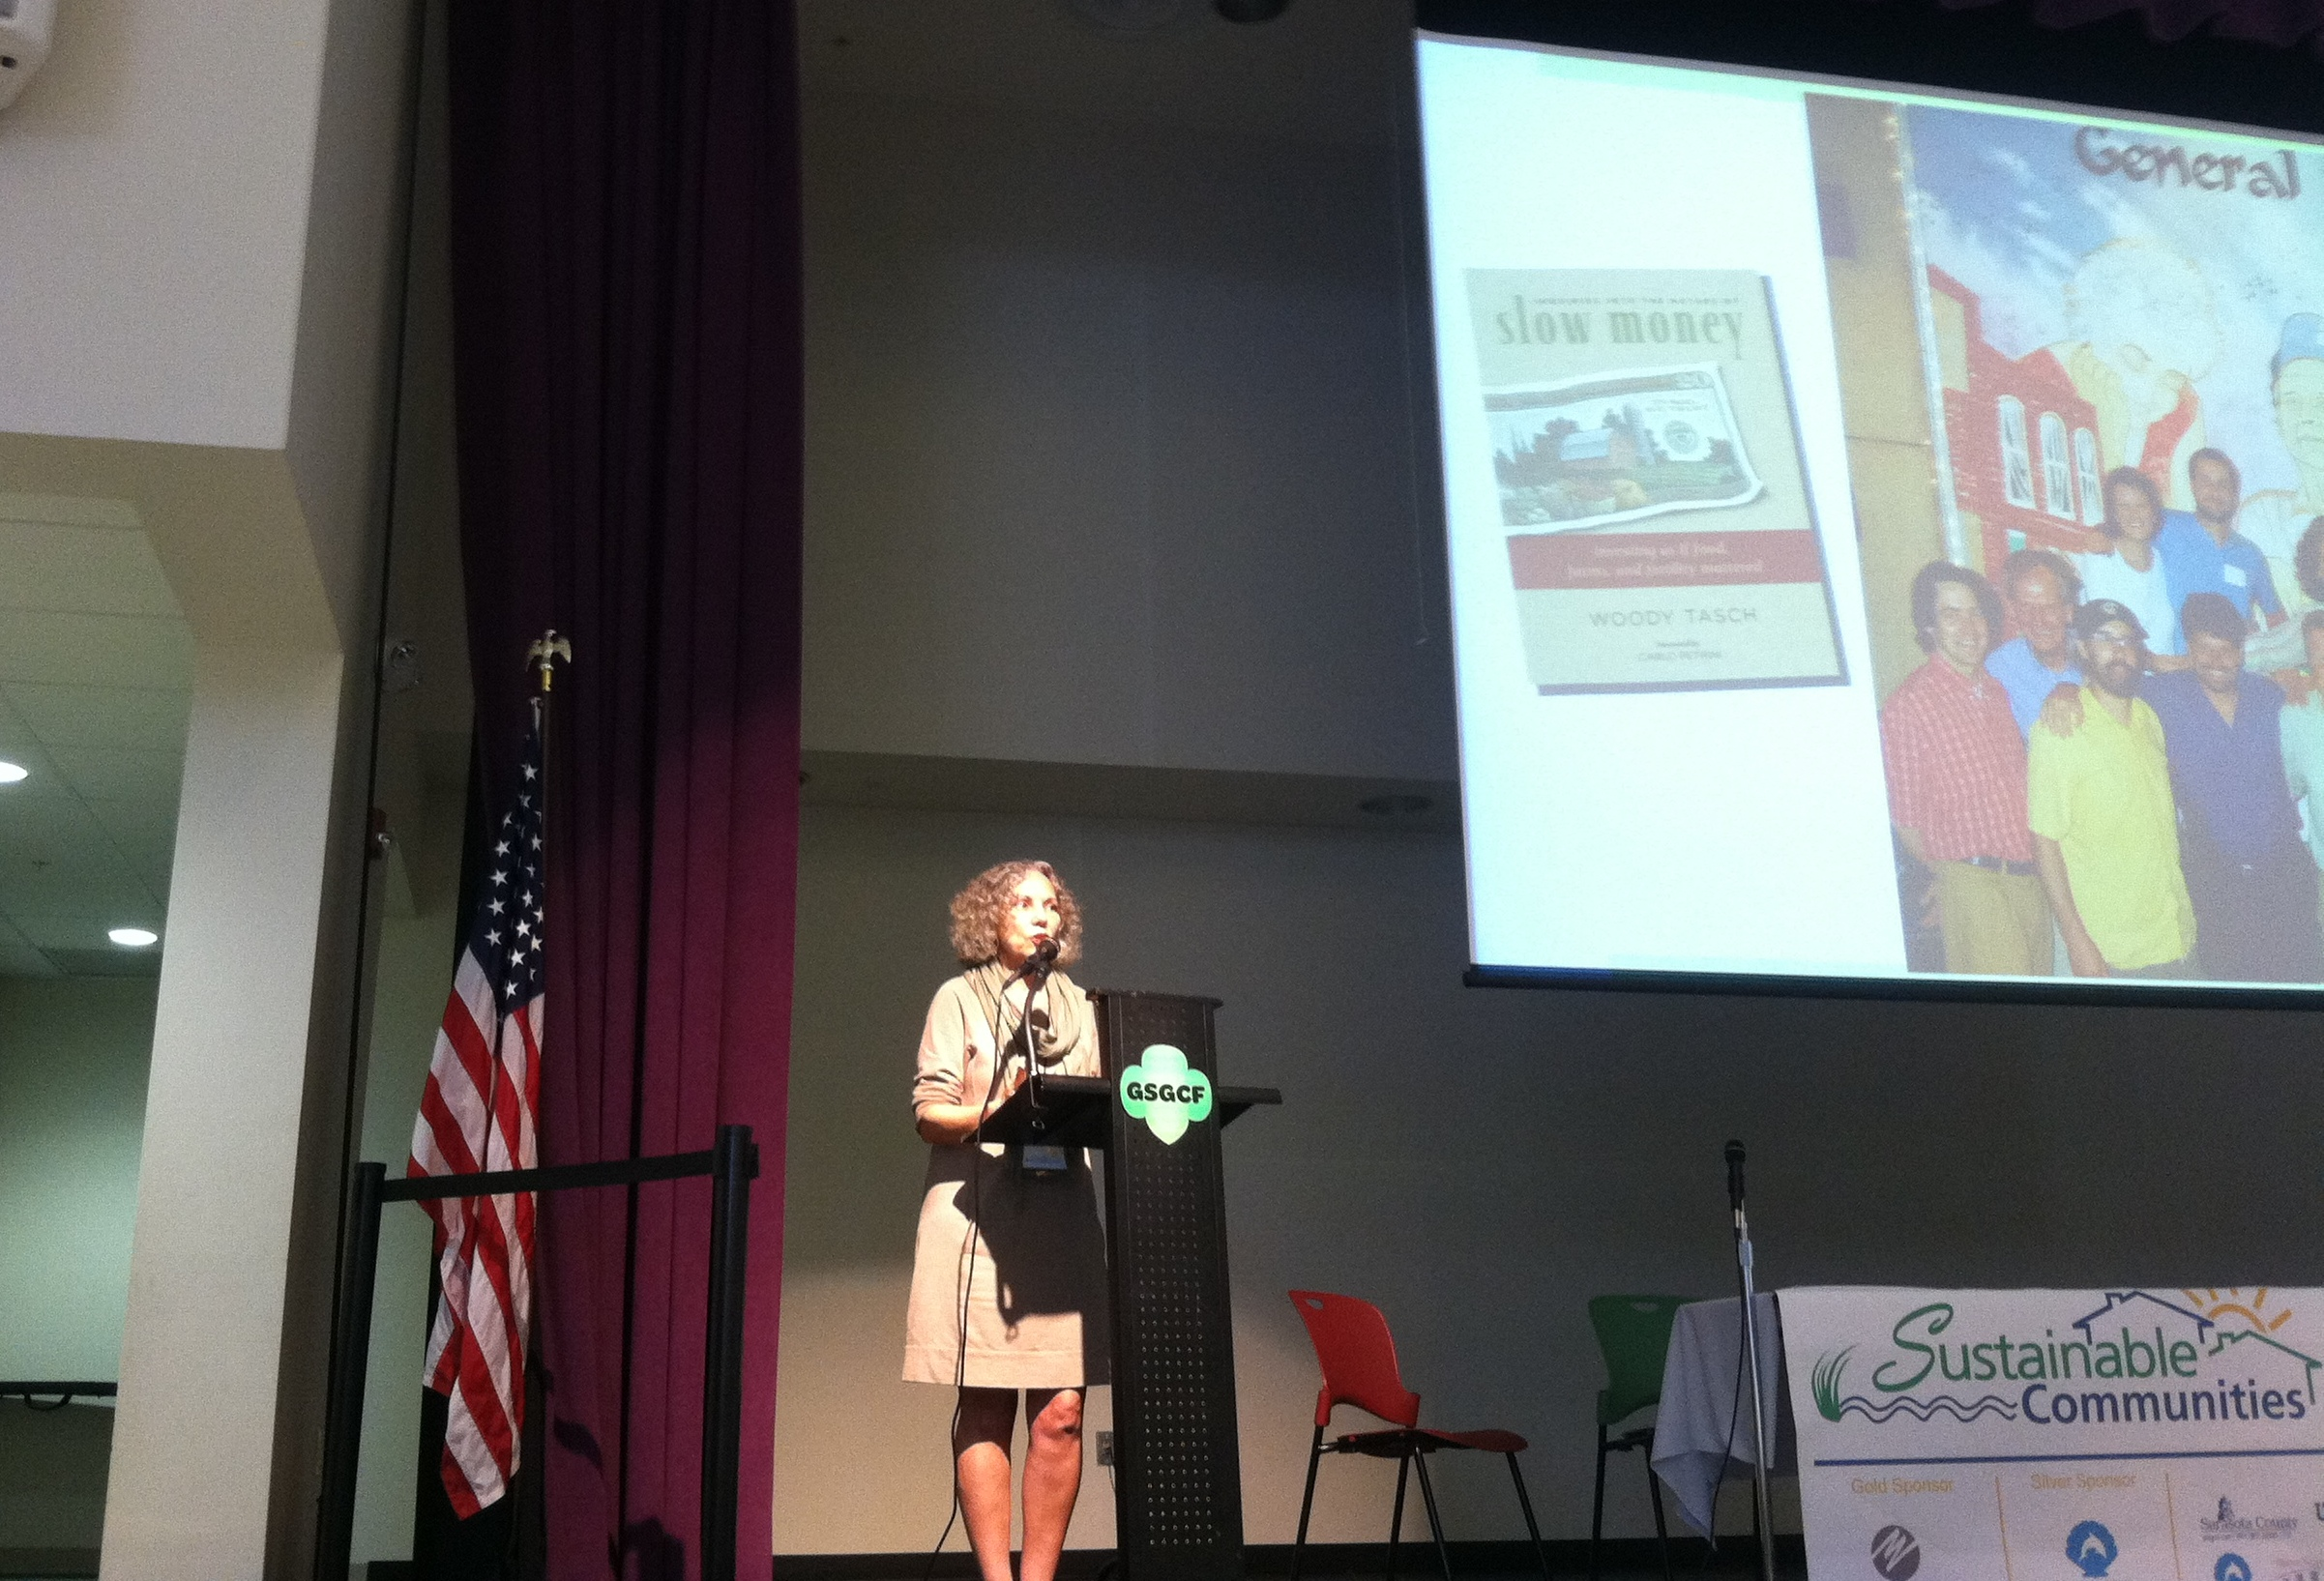 Carol Peppe Hewitt speaking at Sarasota County's 8th annual Sustainable Communities Workshop.